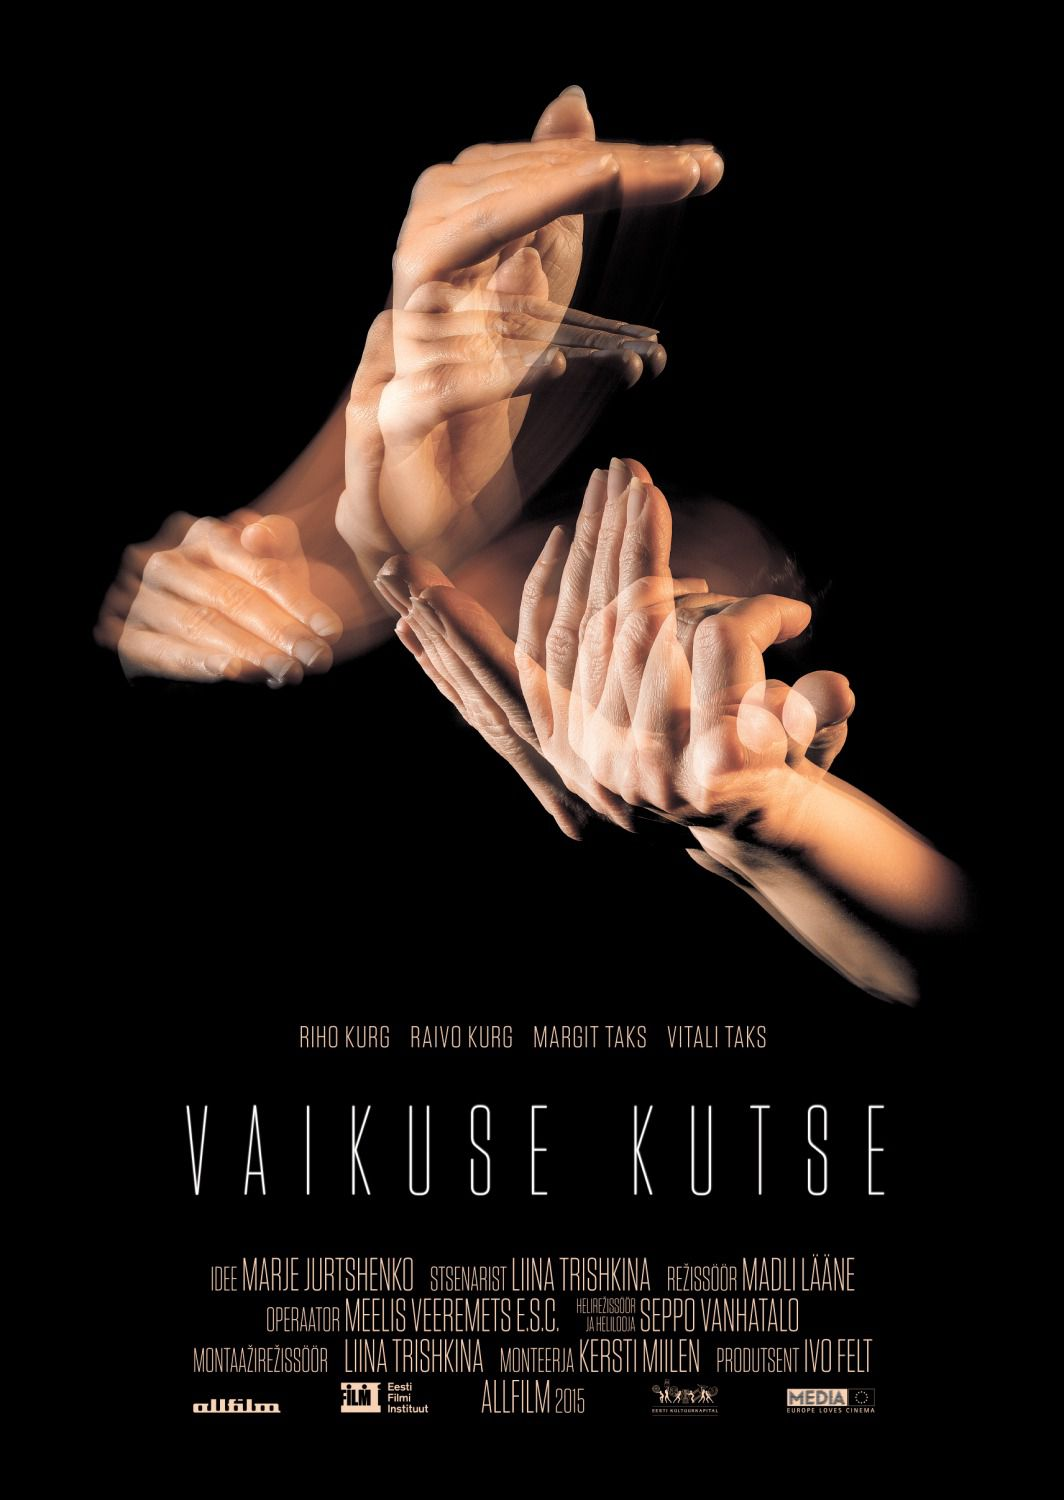 Vaikuse Kutse - Cast: Riho and Raivo Kurg, Margit and Vitali Taks - film poster 2018